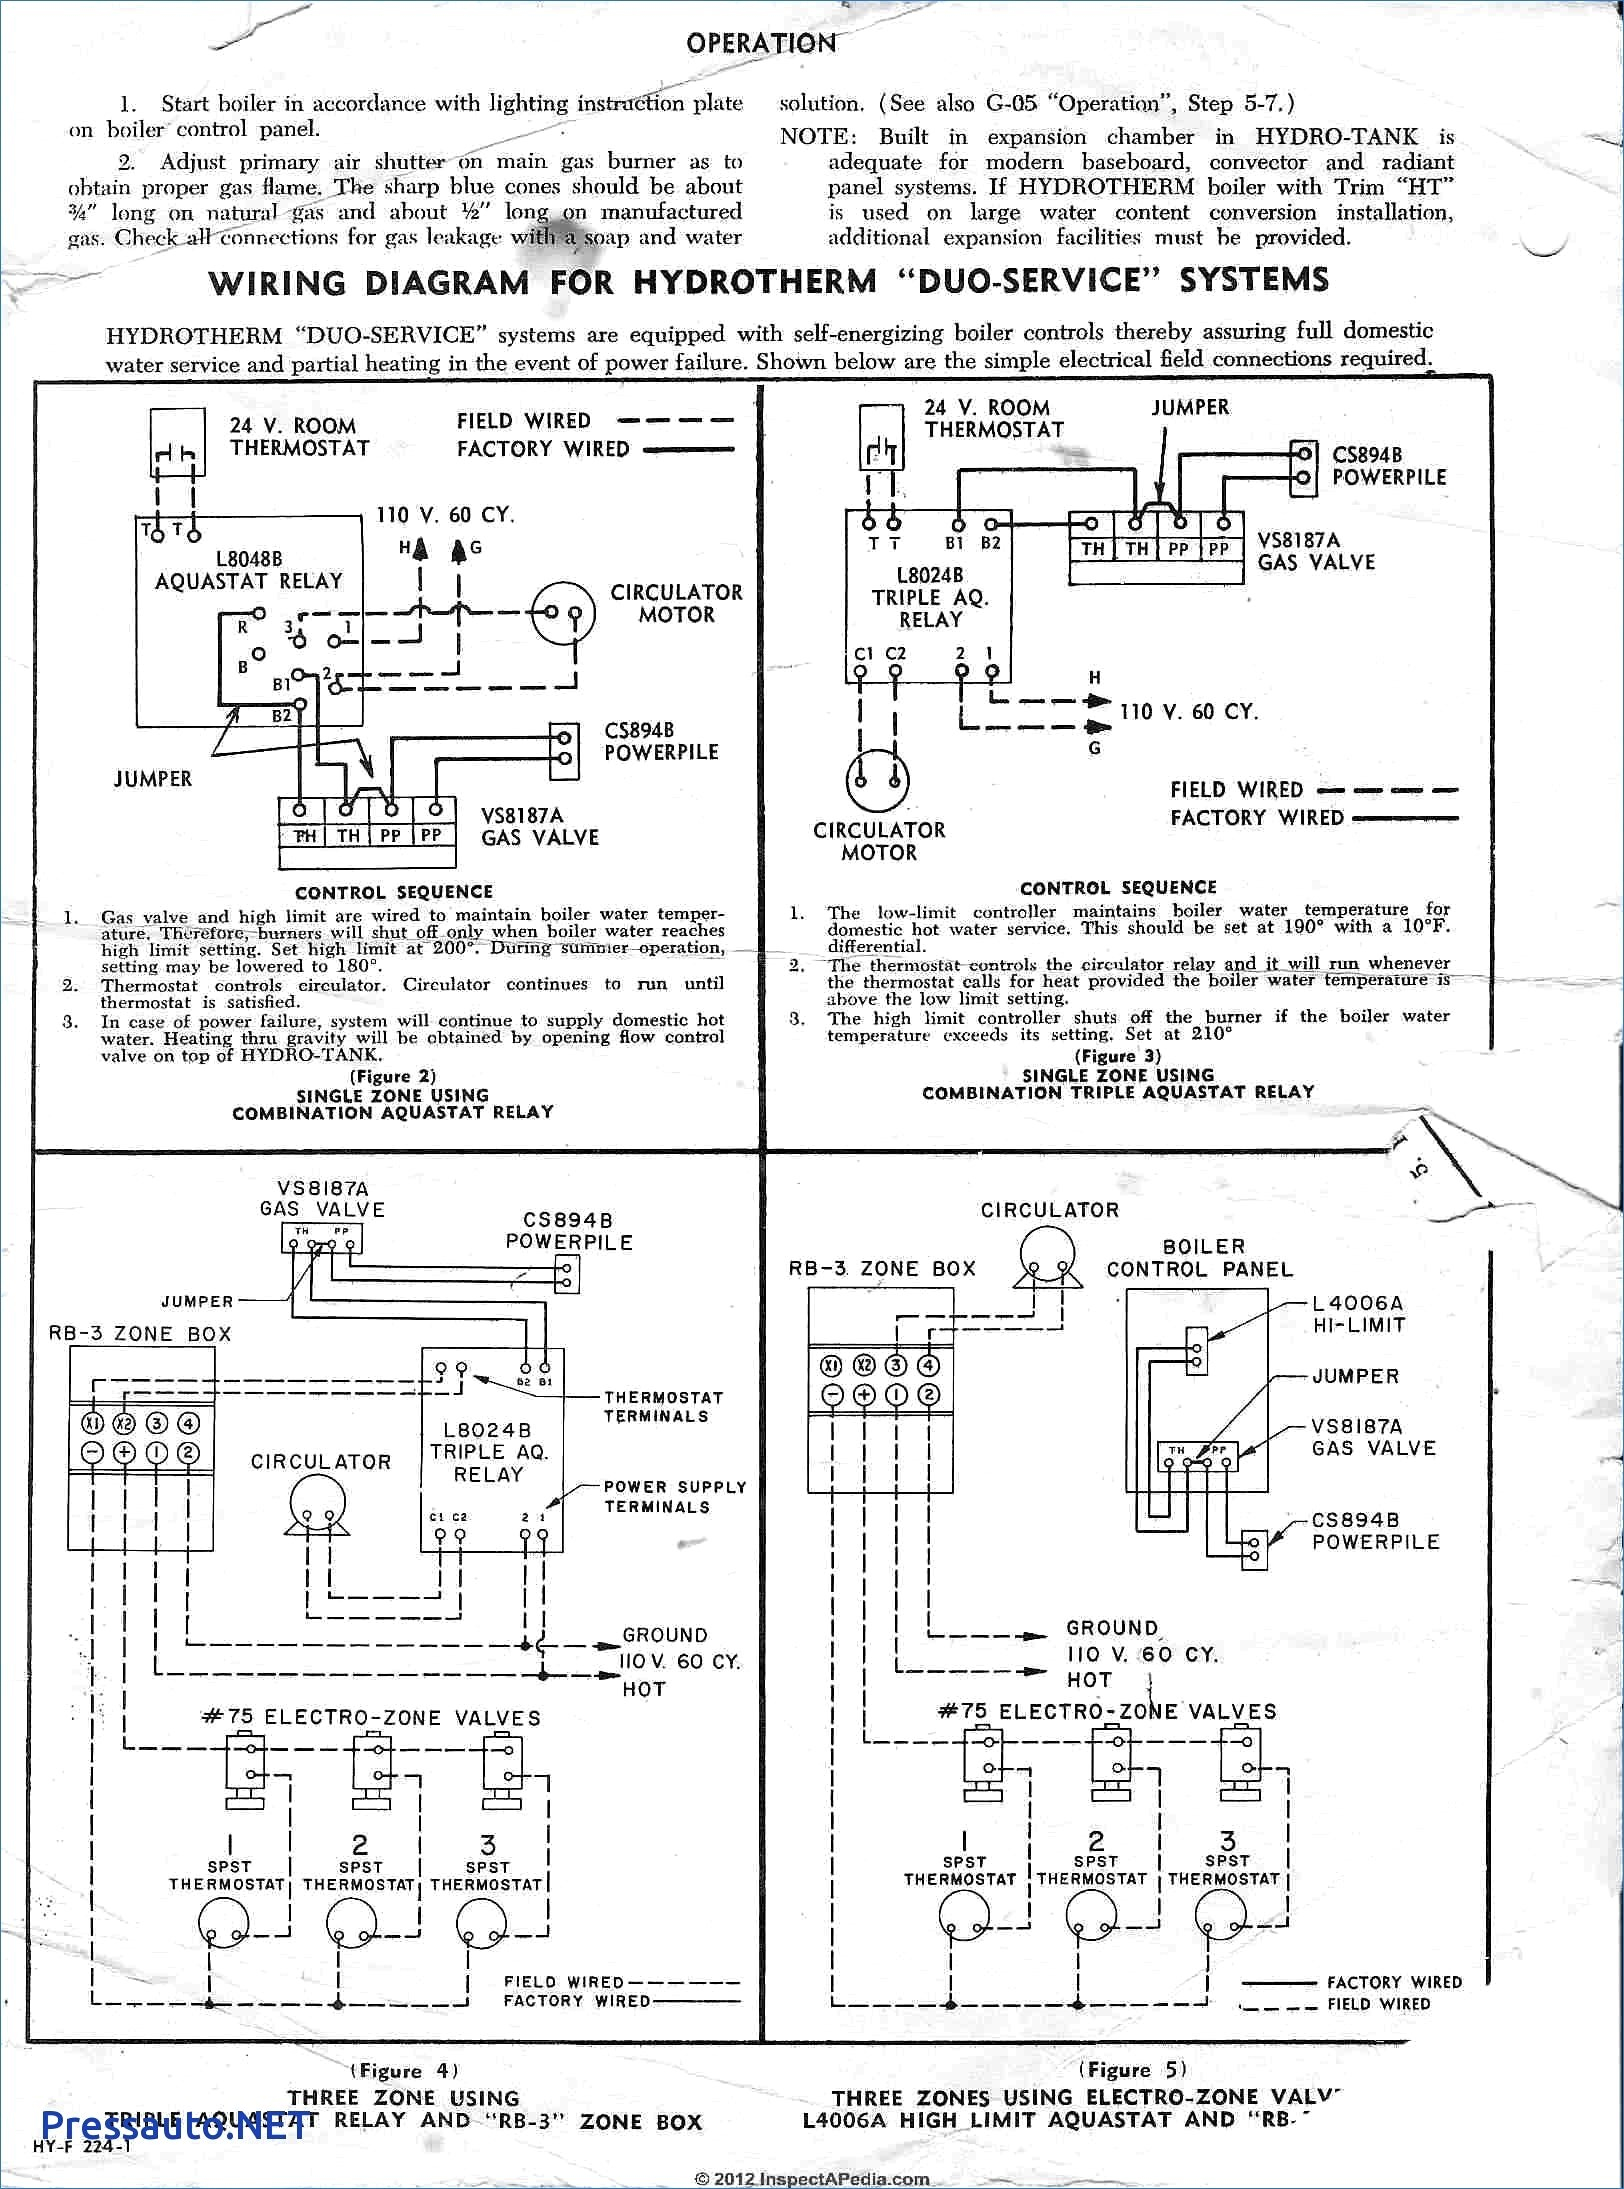 Collection Of Square D Motor Control Center Wiring Diagram Download